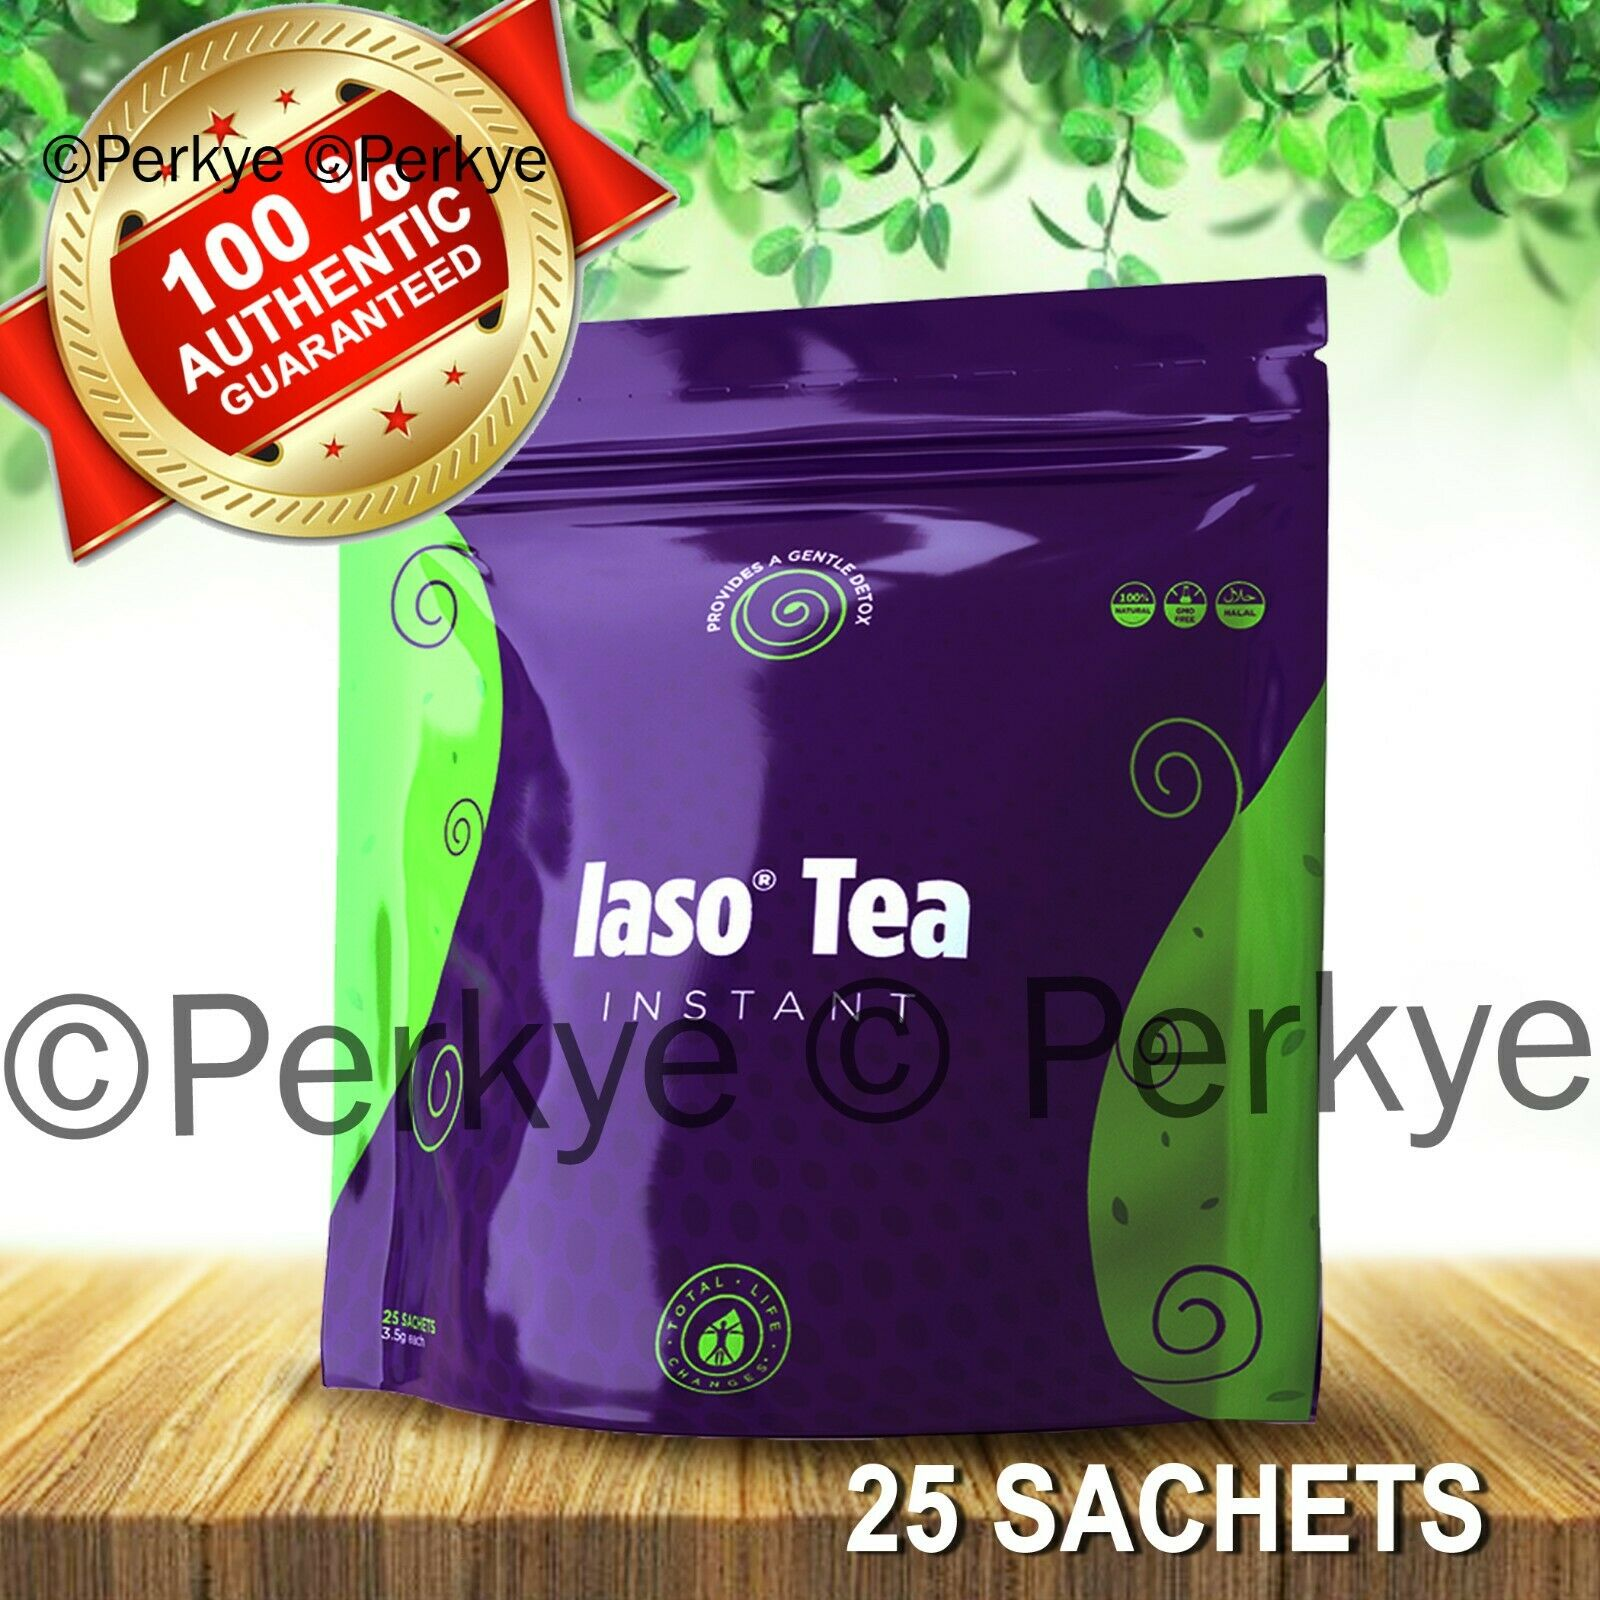 ❤️❤️ IASO INSTANT DETOX TEA 25 SACHETS_New in bag_ Total Life Changes_TLC